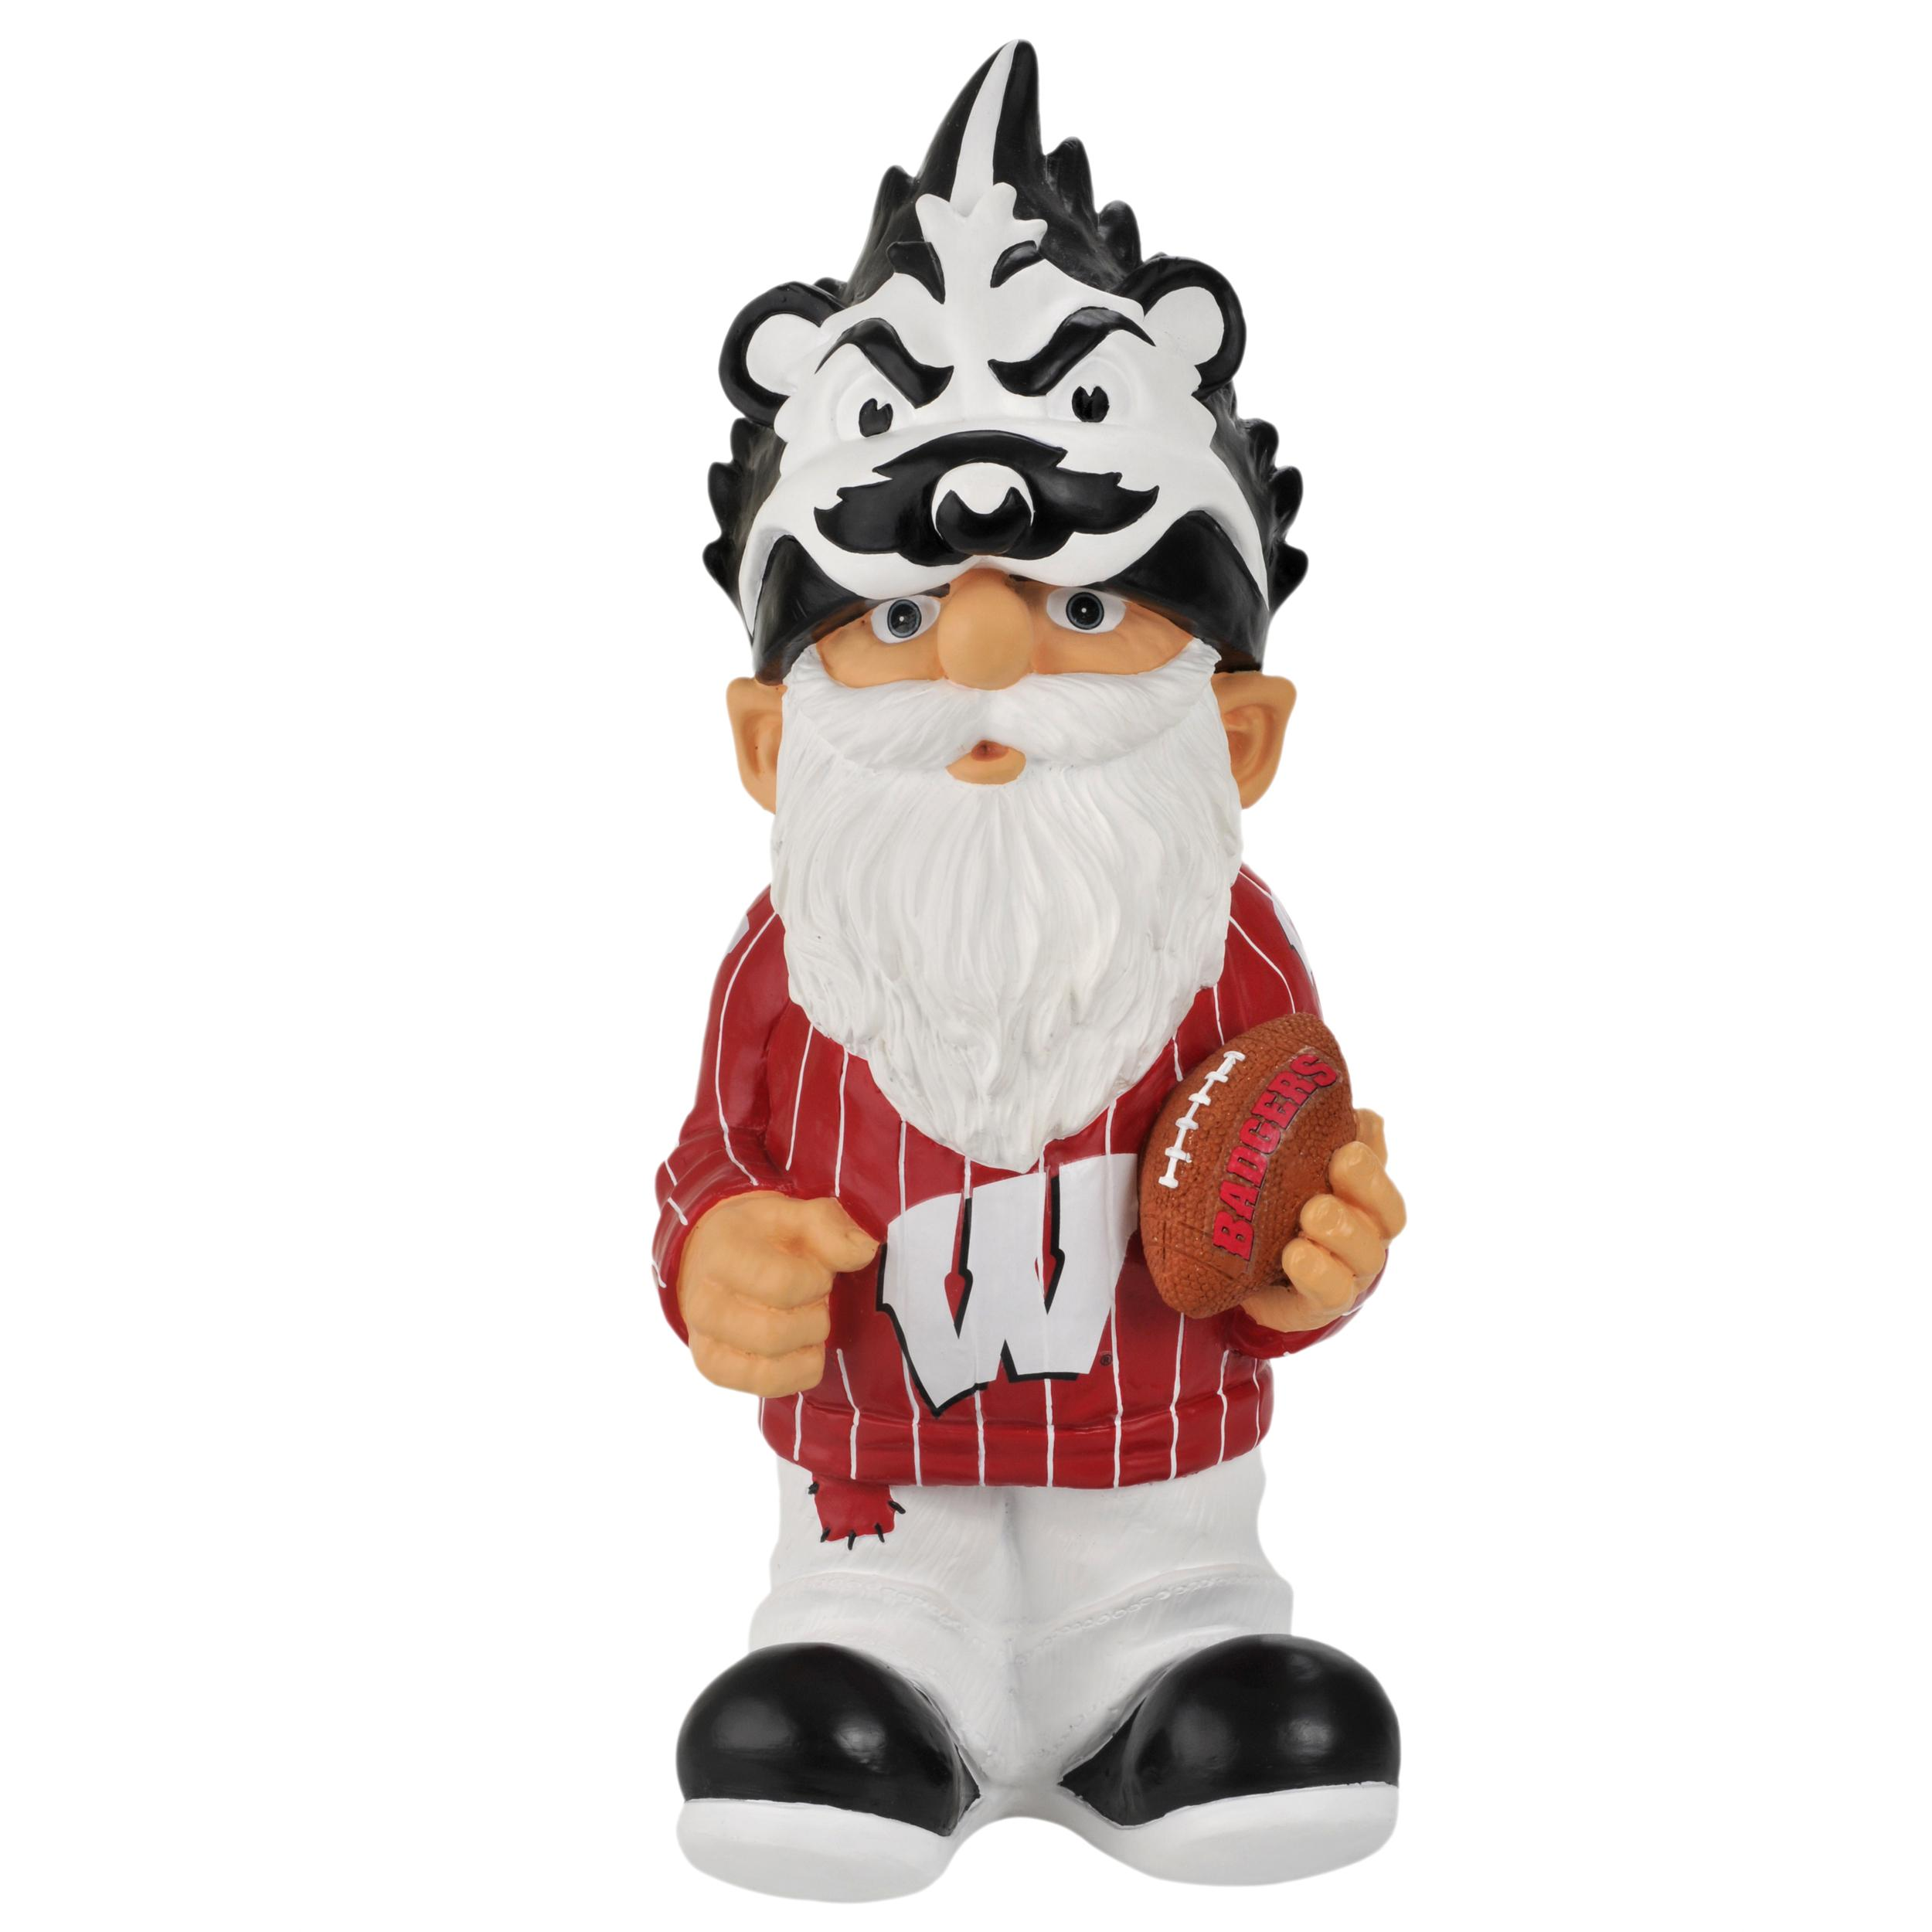 Wisconsin Badgers 11-inch Thematic Garden Gnome - Thumbnail 1